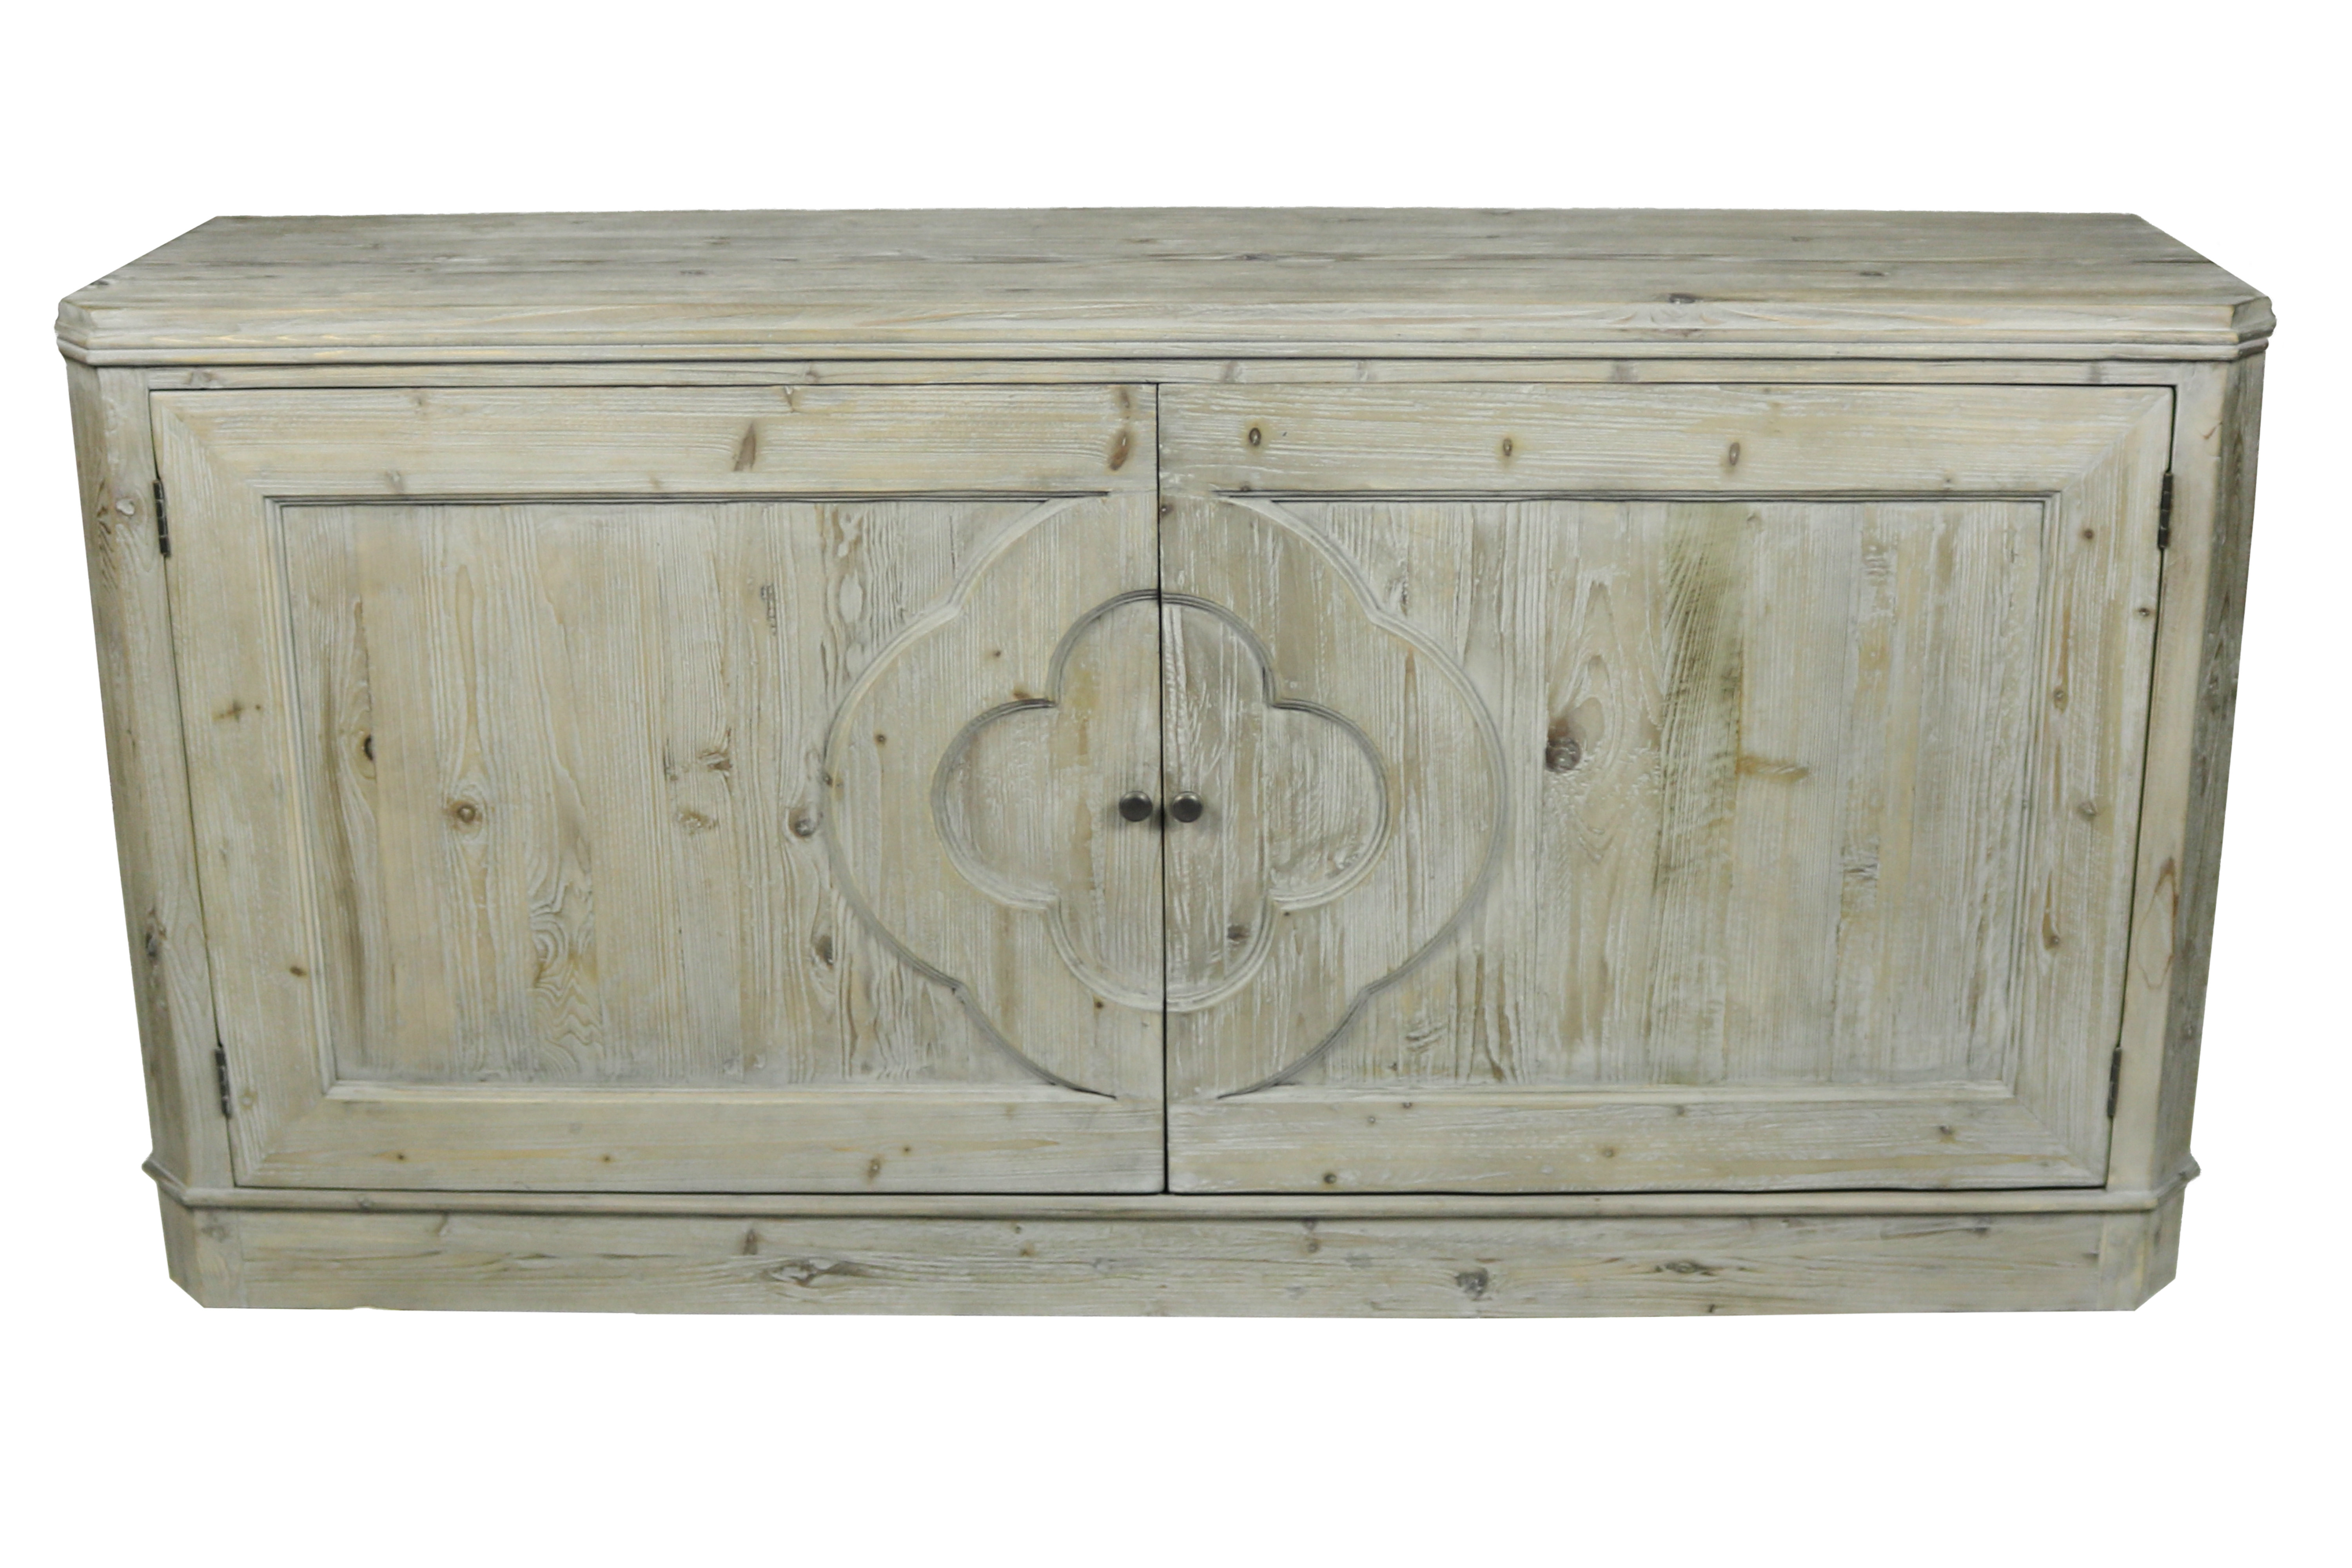 Pine Reclaimed Wood Sideboards & Buffets You'll Love In 2019 Intended For Steinhatchee Reclaimed Pine 4 Door Sideboards (View 11 of 20)